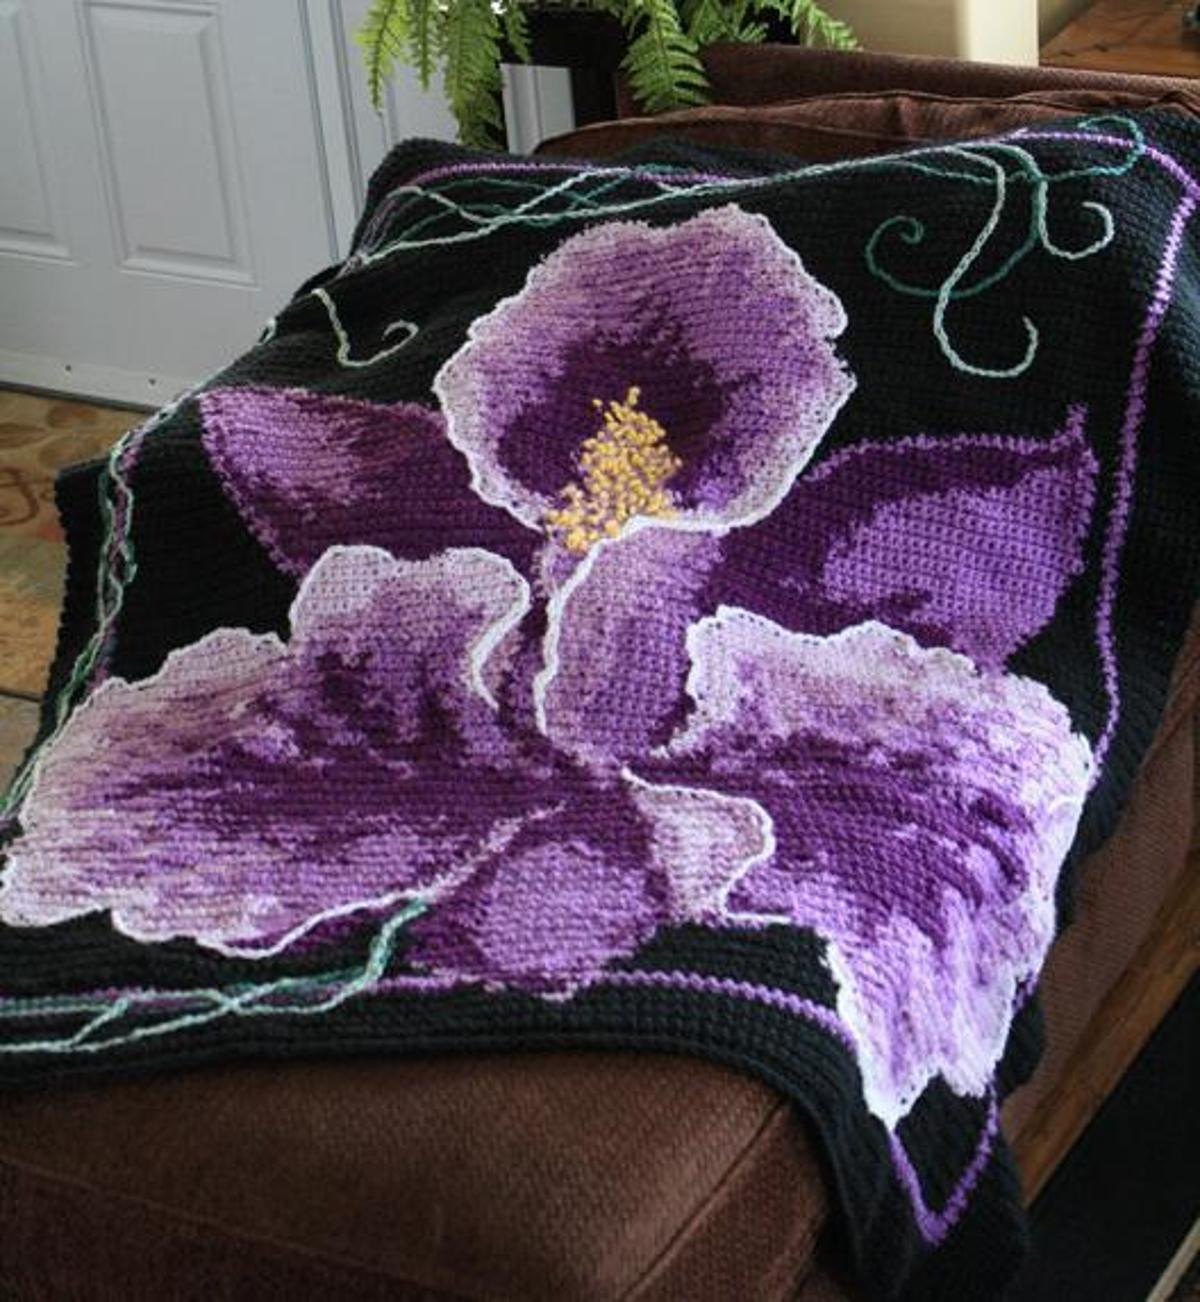 Single Crochet Patterns Beautiful orchid Single Crochet Afghan Of Single Crochet Patterns New Easy Diy Crochet Hats 2 Ways